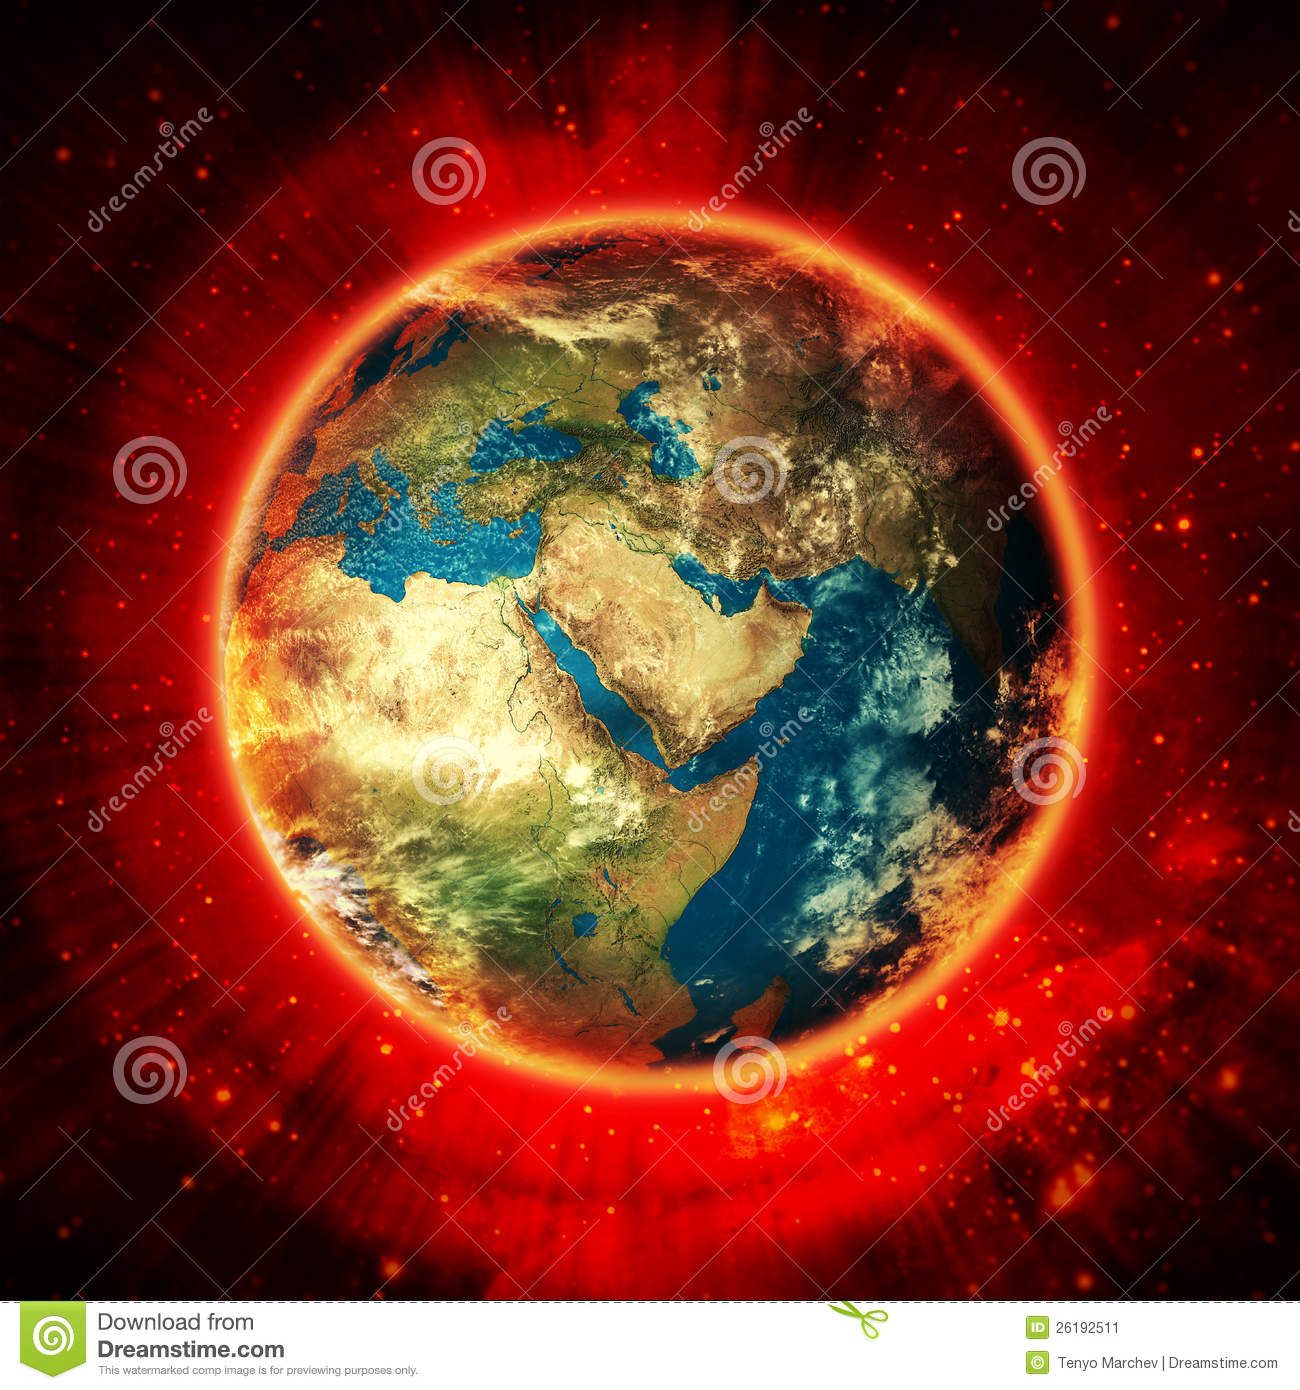 Earth Energy In Space Stock Image - Image: 26192511